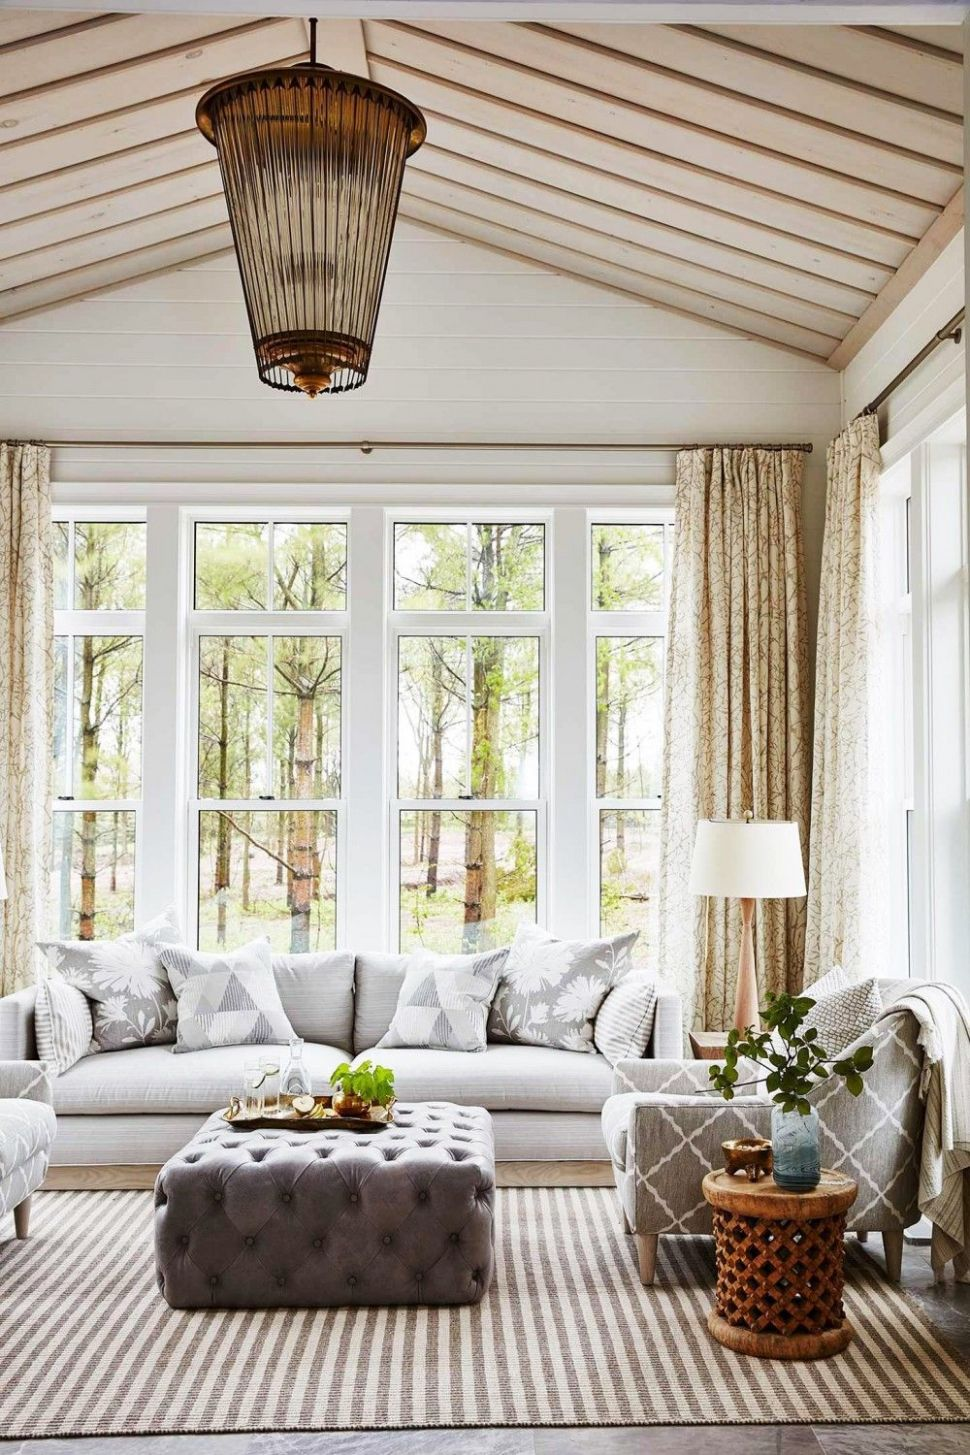 Sarah off the Grid: Sunroom (With images) | Small room design ..